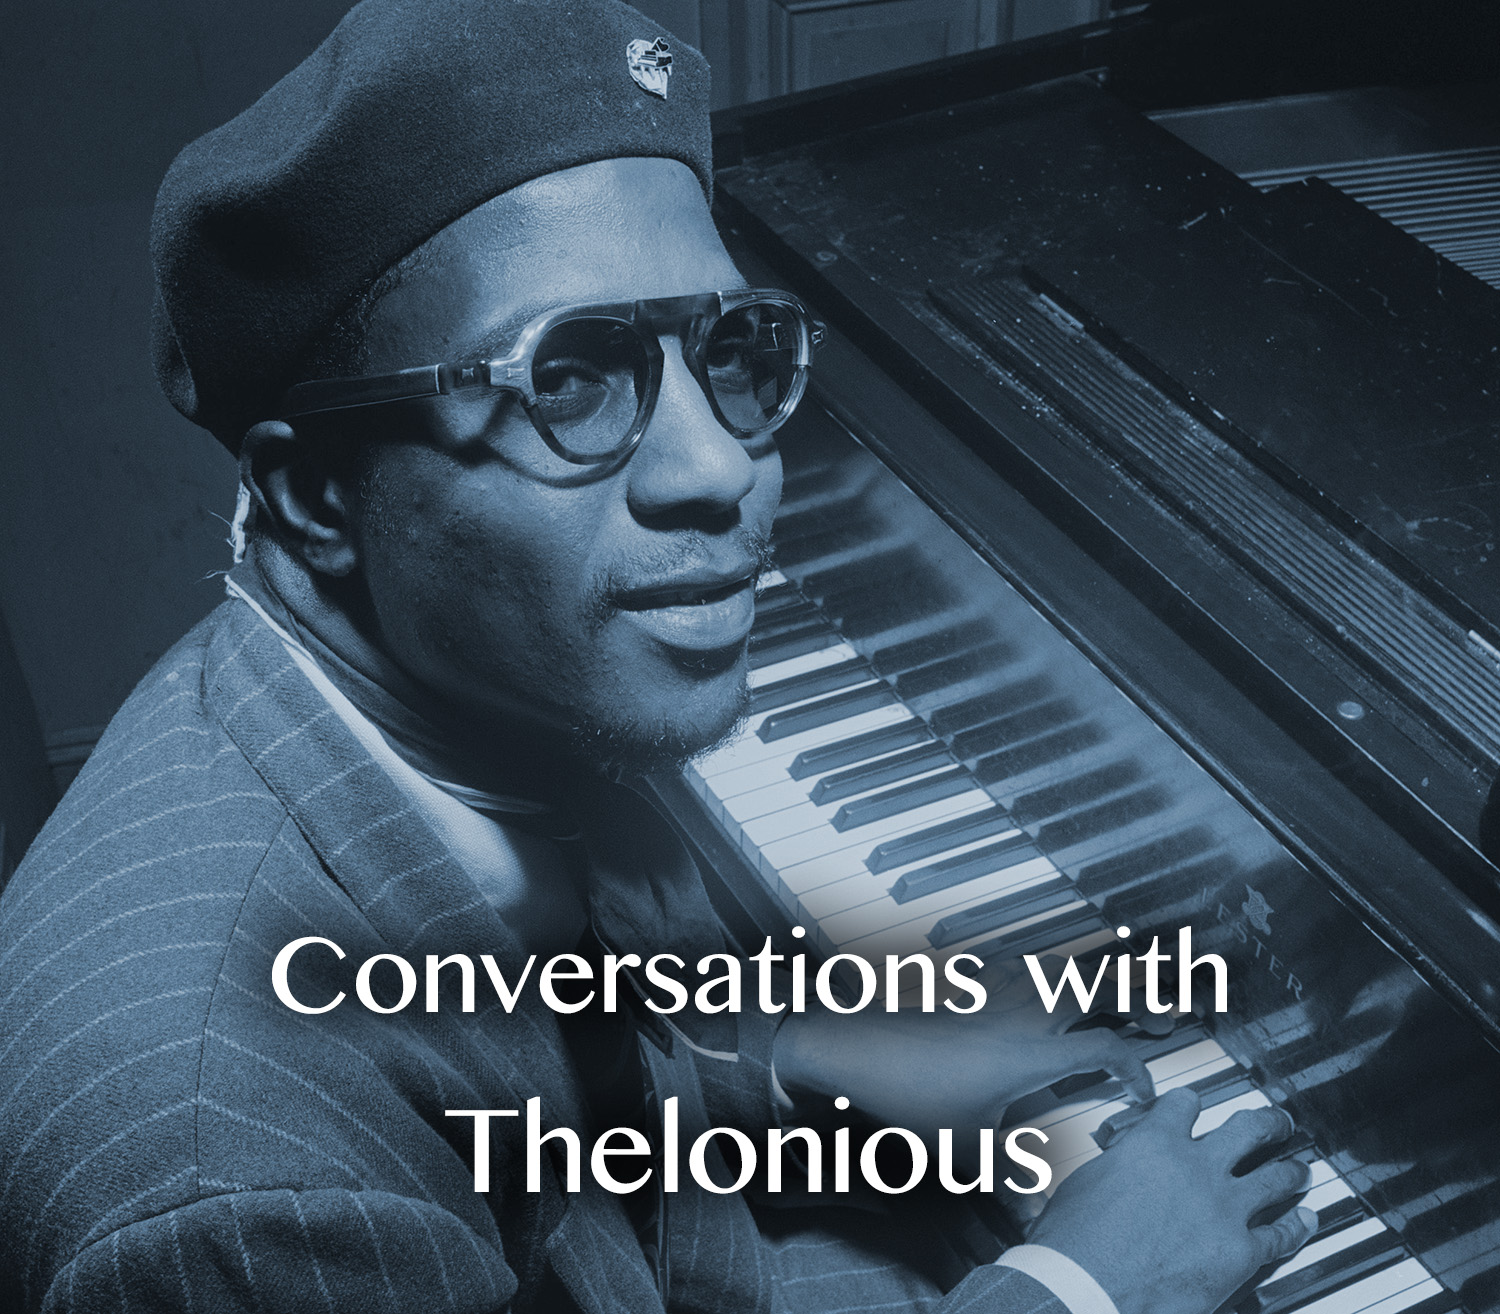 Conversations with Thelonious